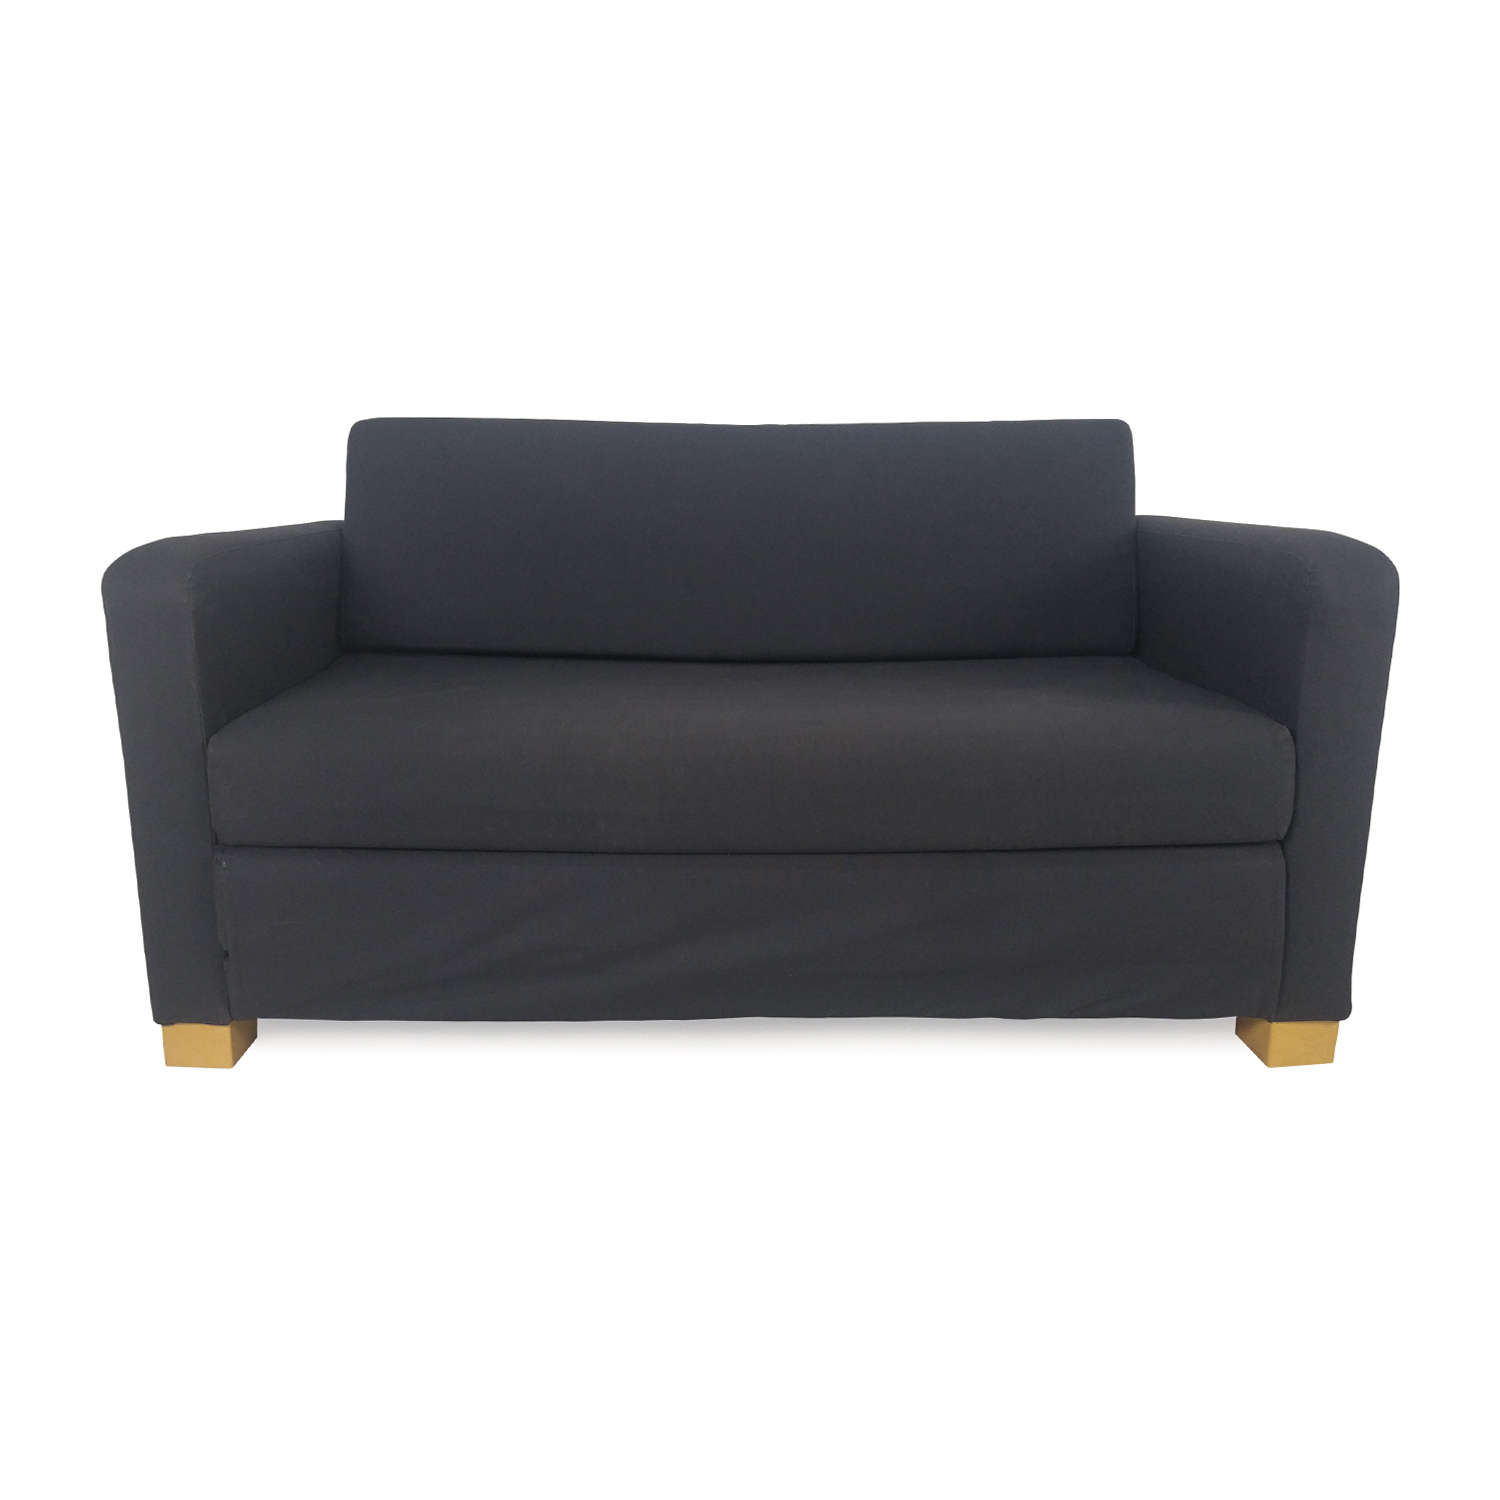 ikea futon sofa bed ikea futon sofa bed canada ikea futon sofa bed cover home design ideas. Black Bedroom Furniture Sets. Home Design Ideas